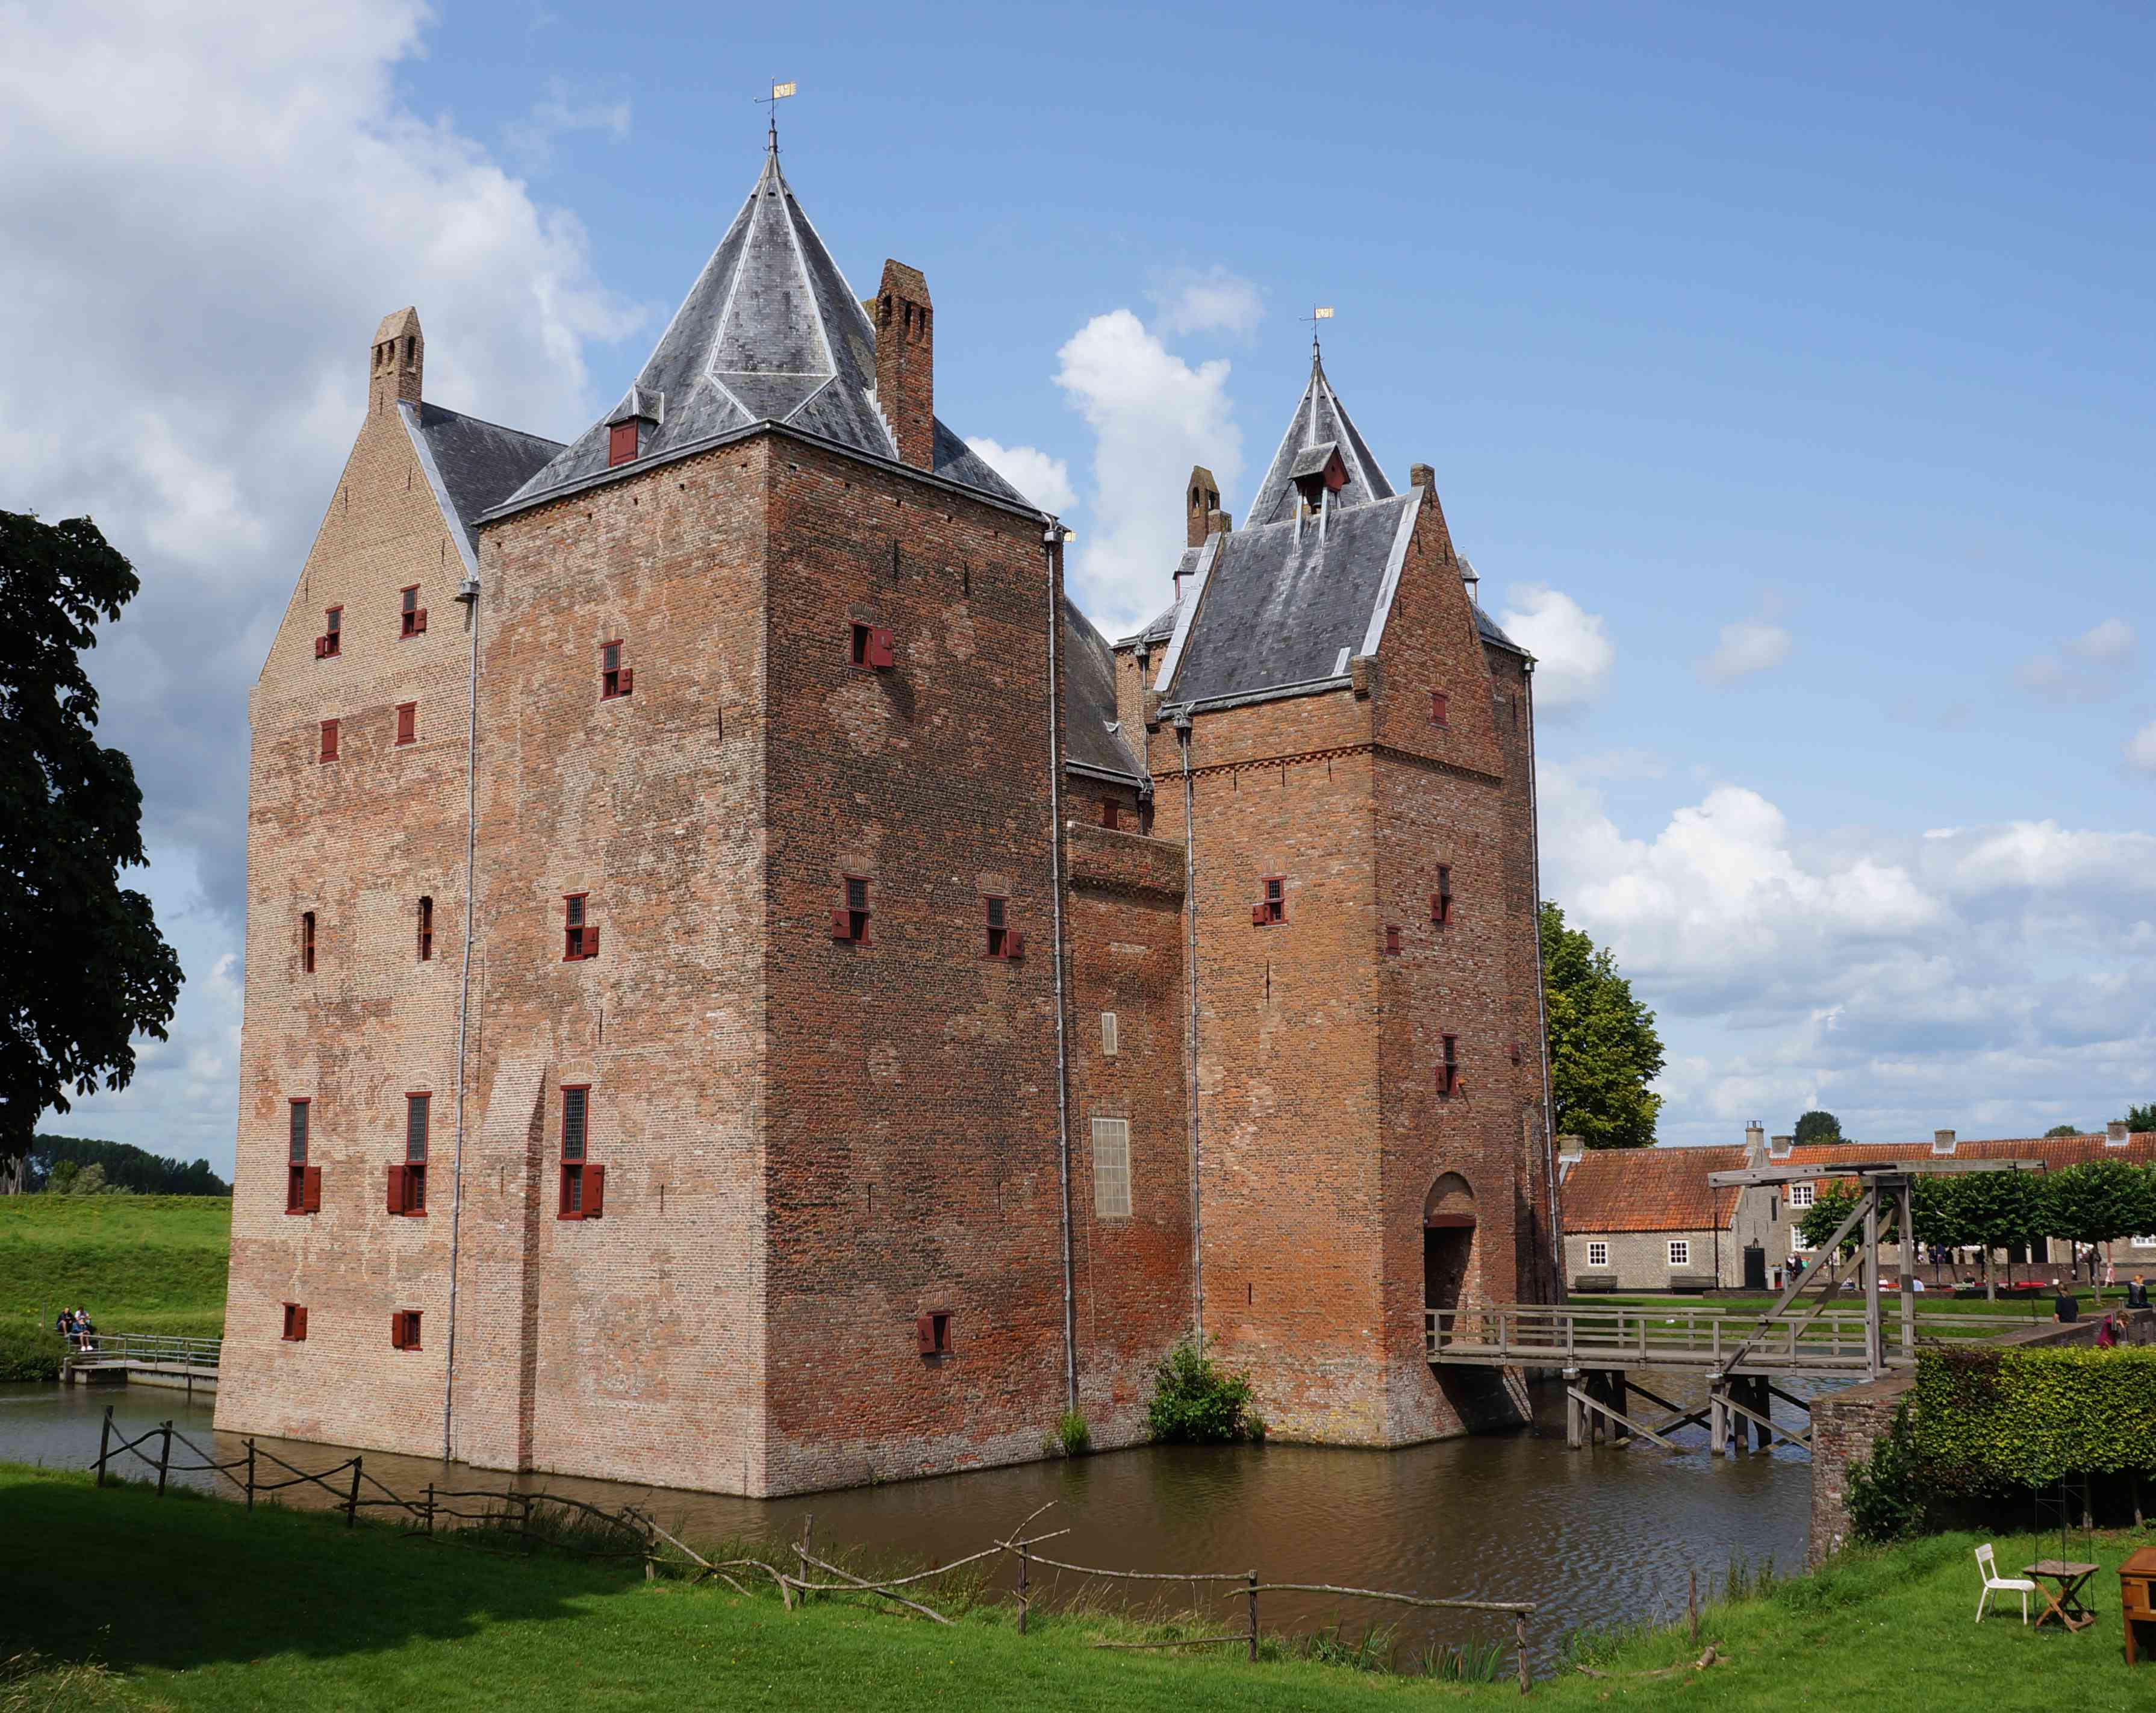 Loevestein medieval castle in the Netherlands